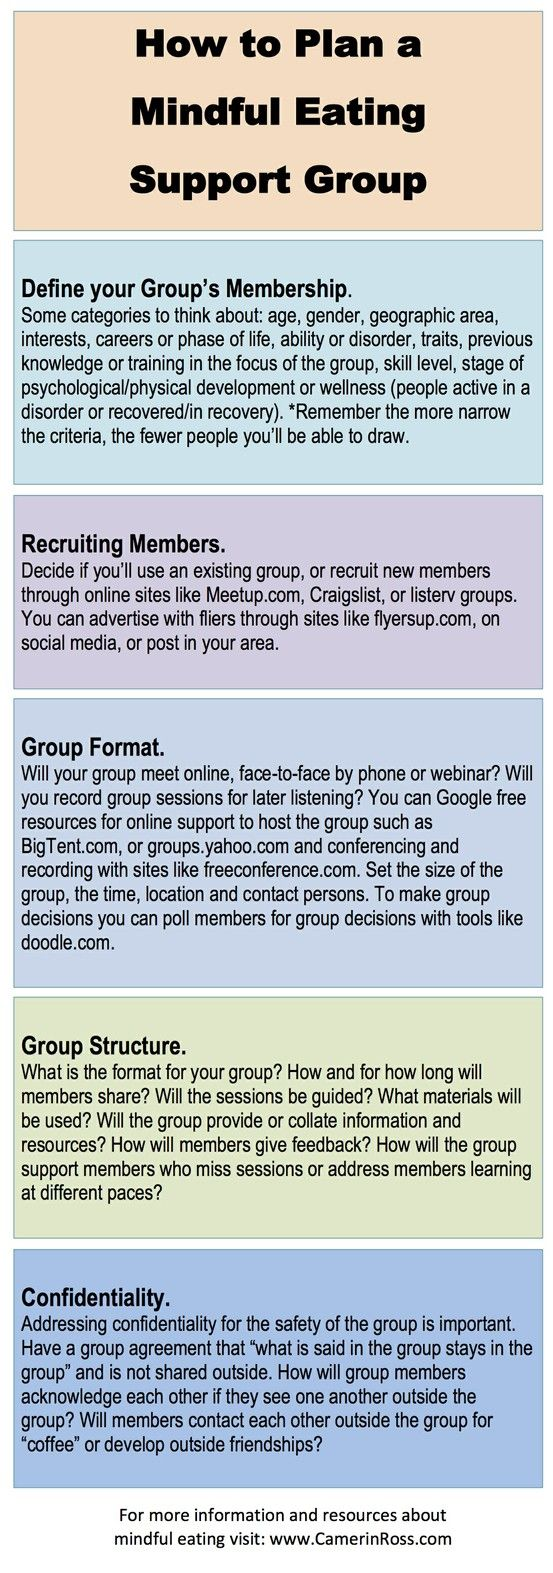 How To Plan A Mindful Eating Support Group | www.CamerinRoss.com | rePinned by APTEDsf.org